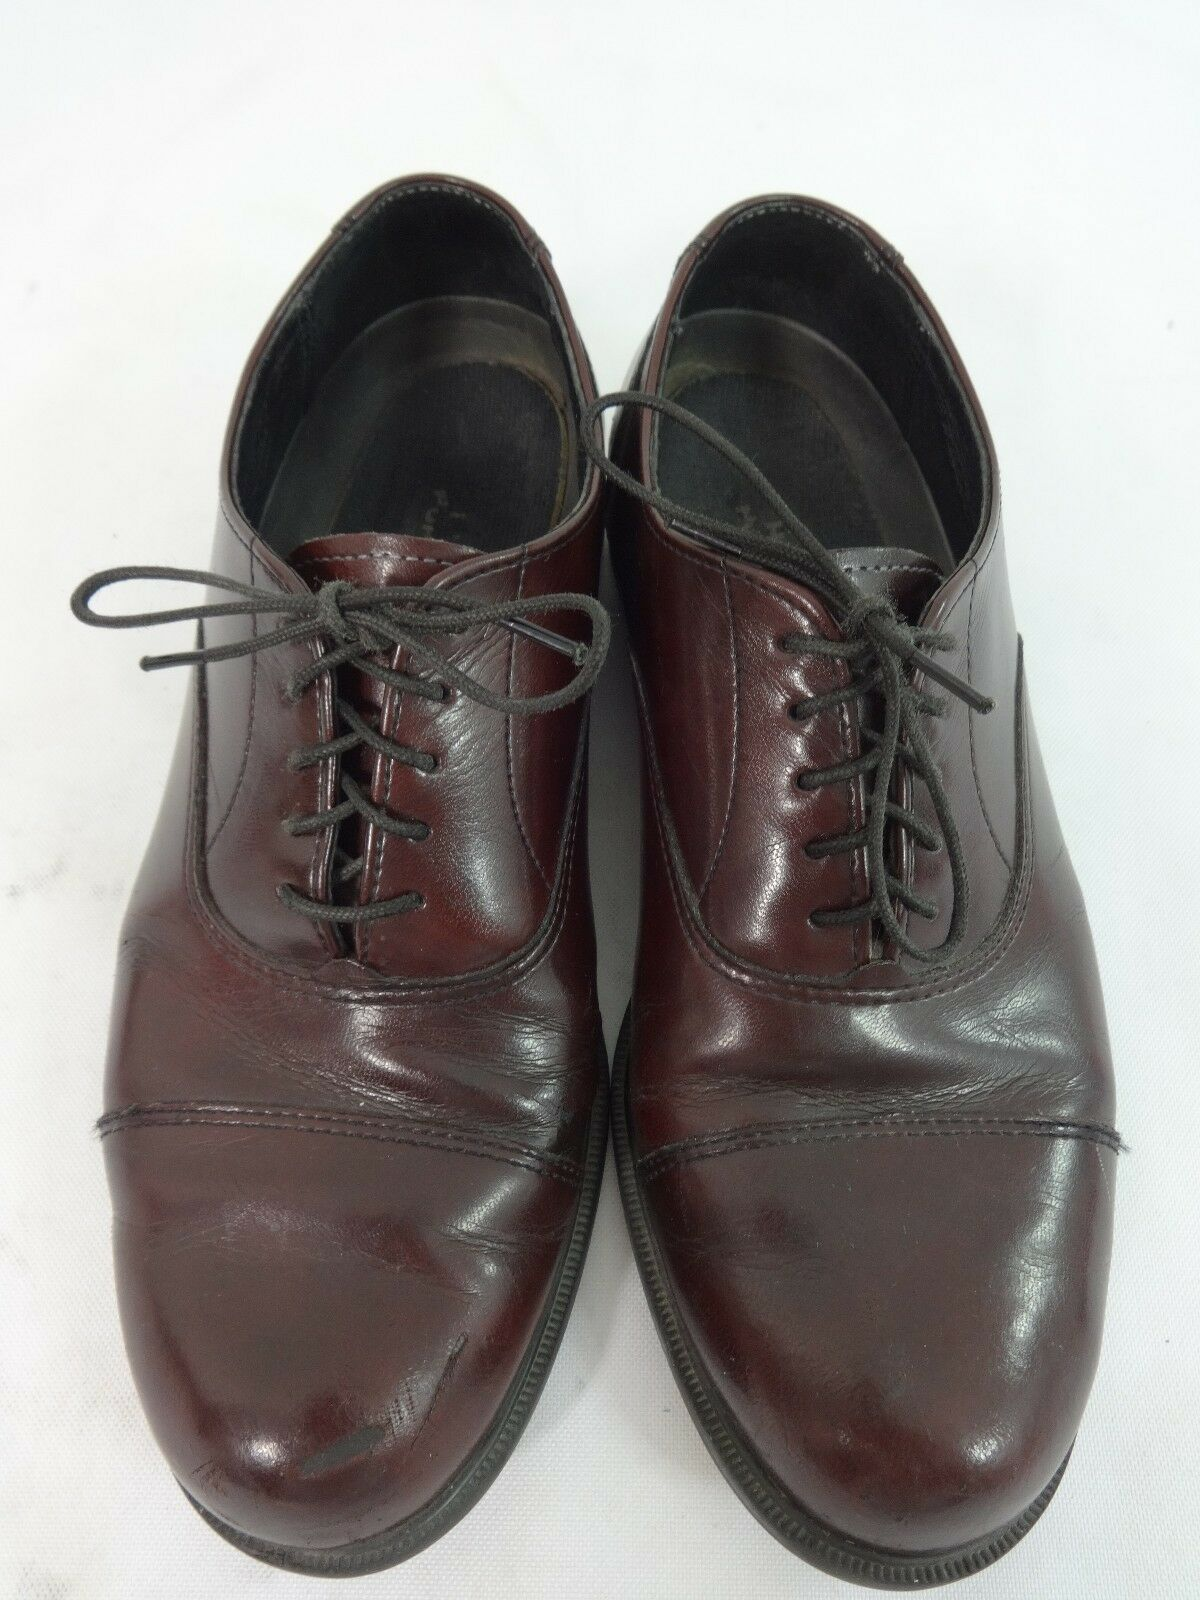 Bowers Mens Shoes Brown Size 9 1/2 M